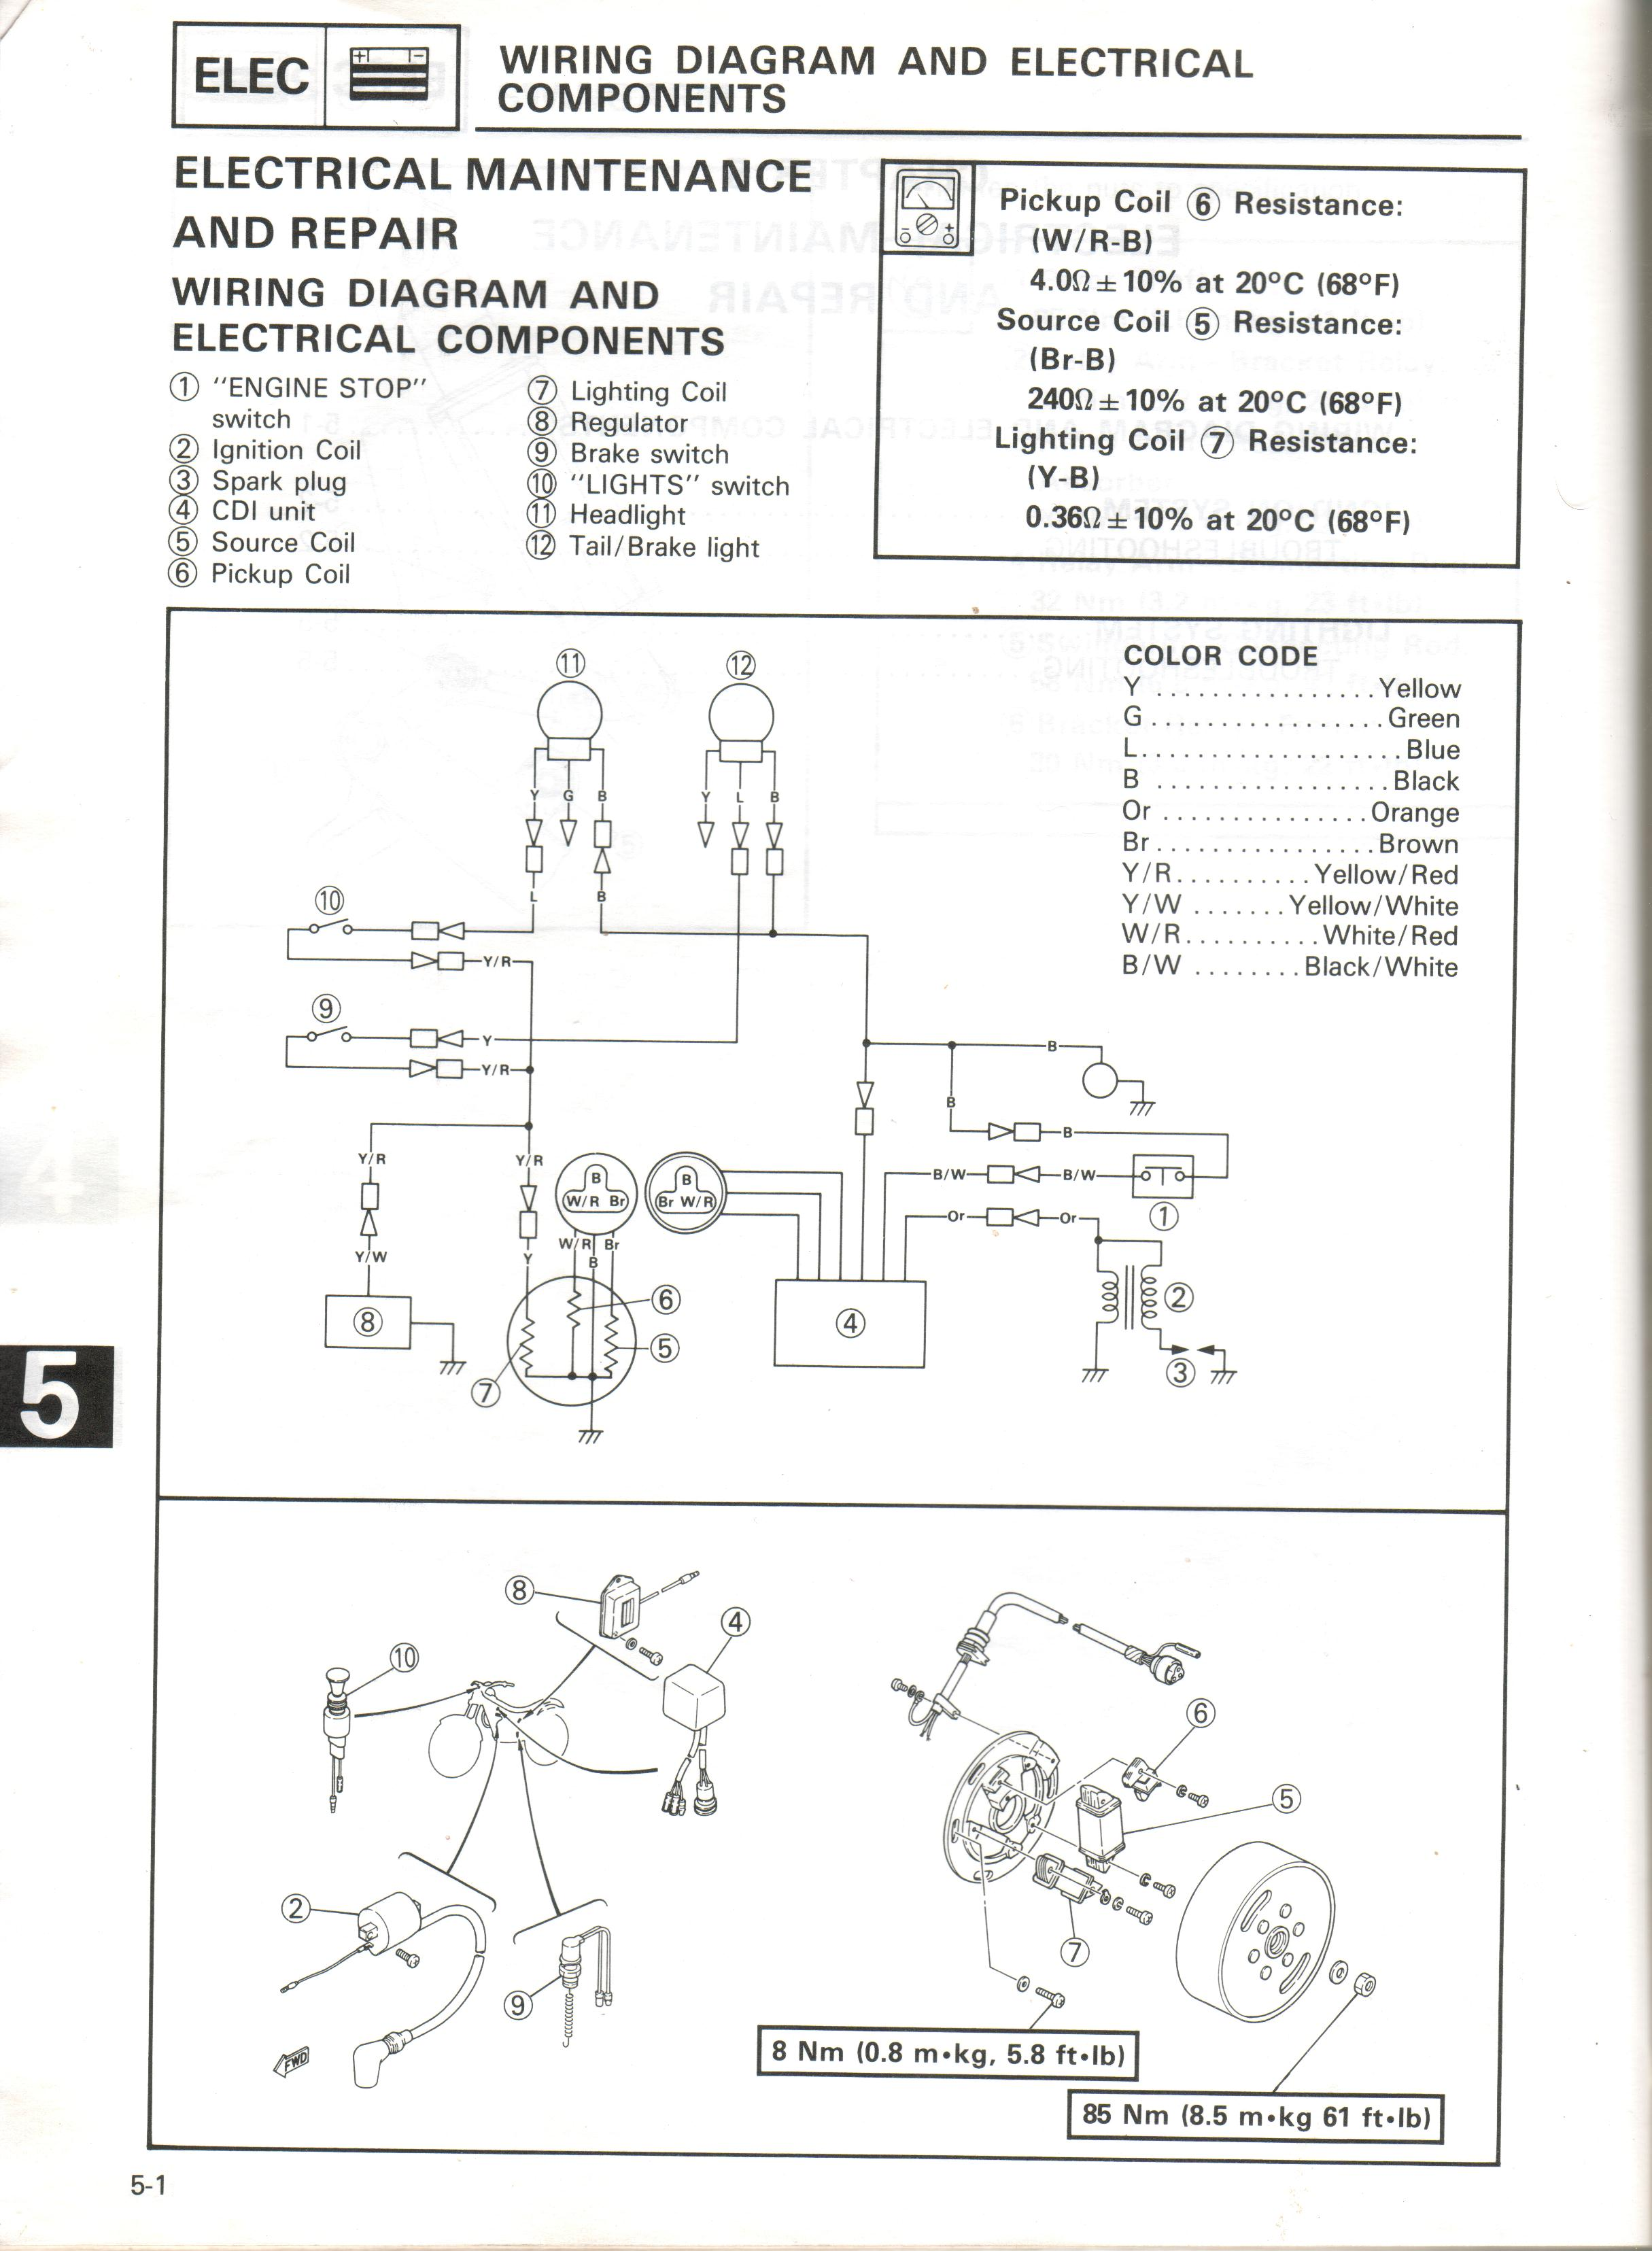 Chapter5 01WheelsInstallation yamaha ty manual 1974 yamaha ty250 wiring diagram at webbmarketing.co